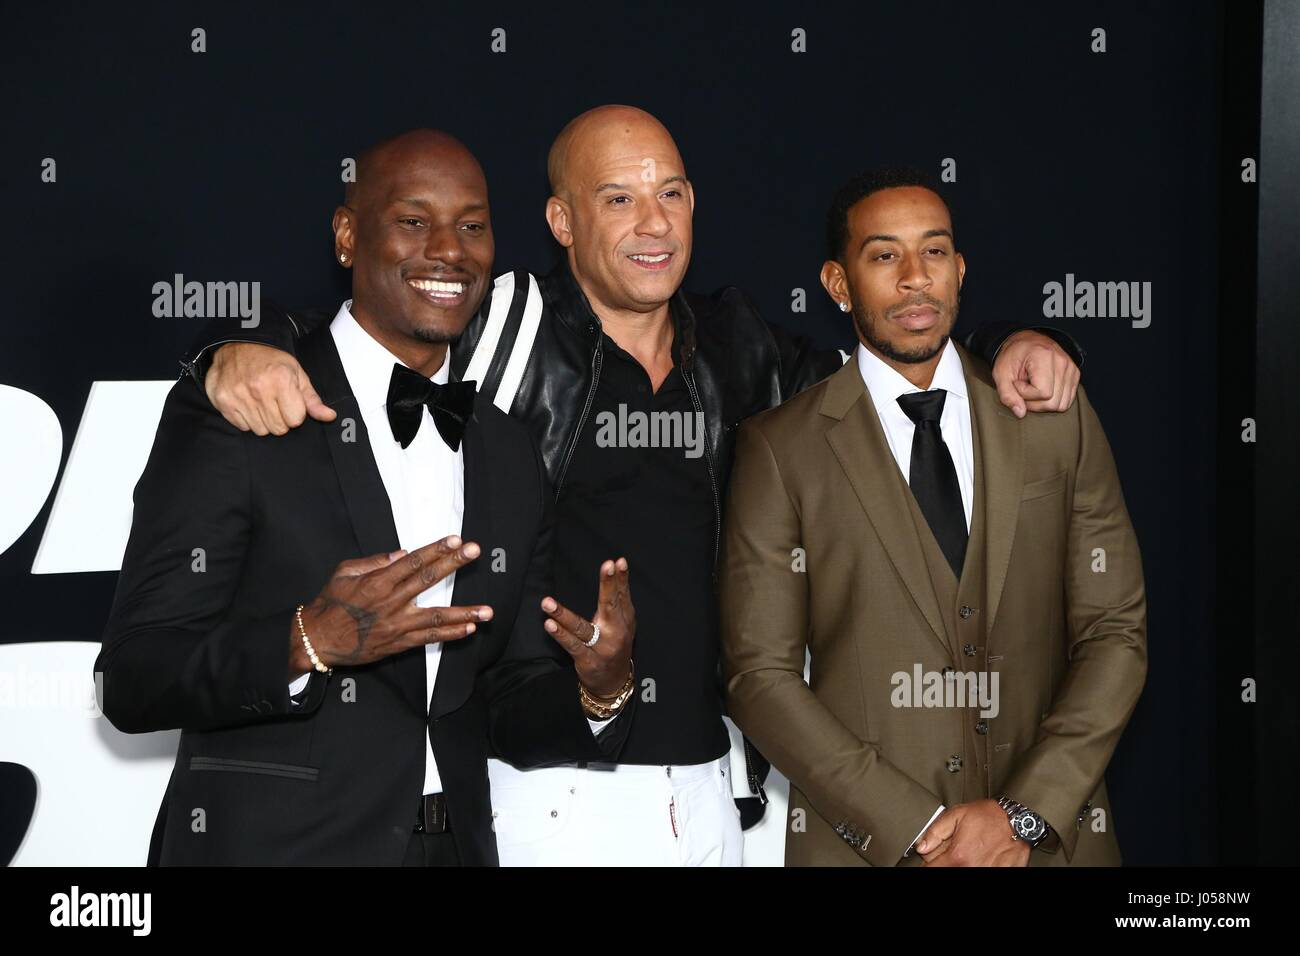 Pics photos tyrese gibson picture 8 - Tyrese Gibson Vin Diesel Ludacris At Arrivals For The Fate Of The Furious Premiere Radio City Music Hall New York Ny April 8 2017